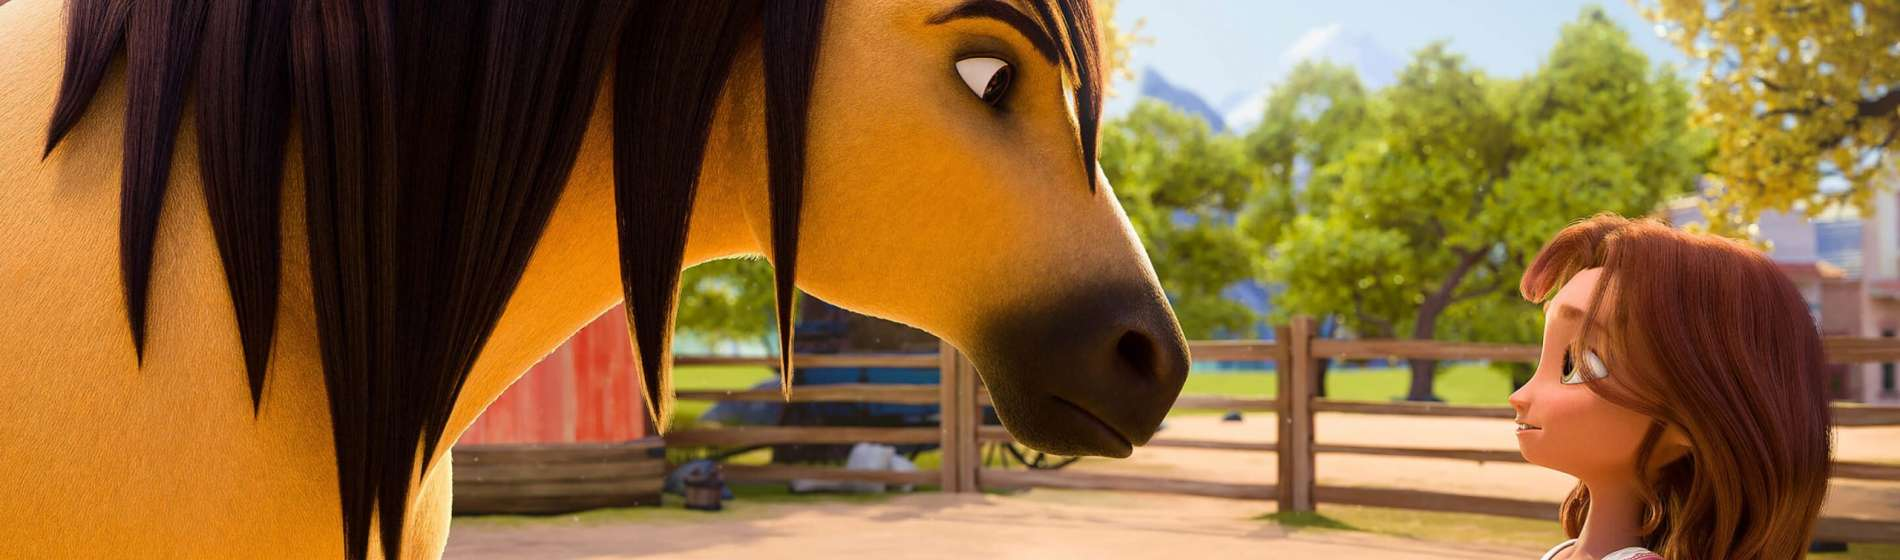 Spirit Untamed animated girl with horse